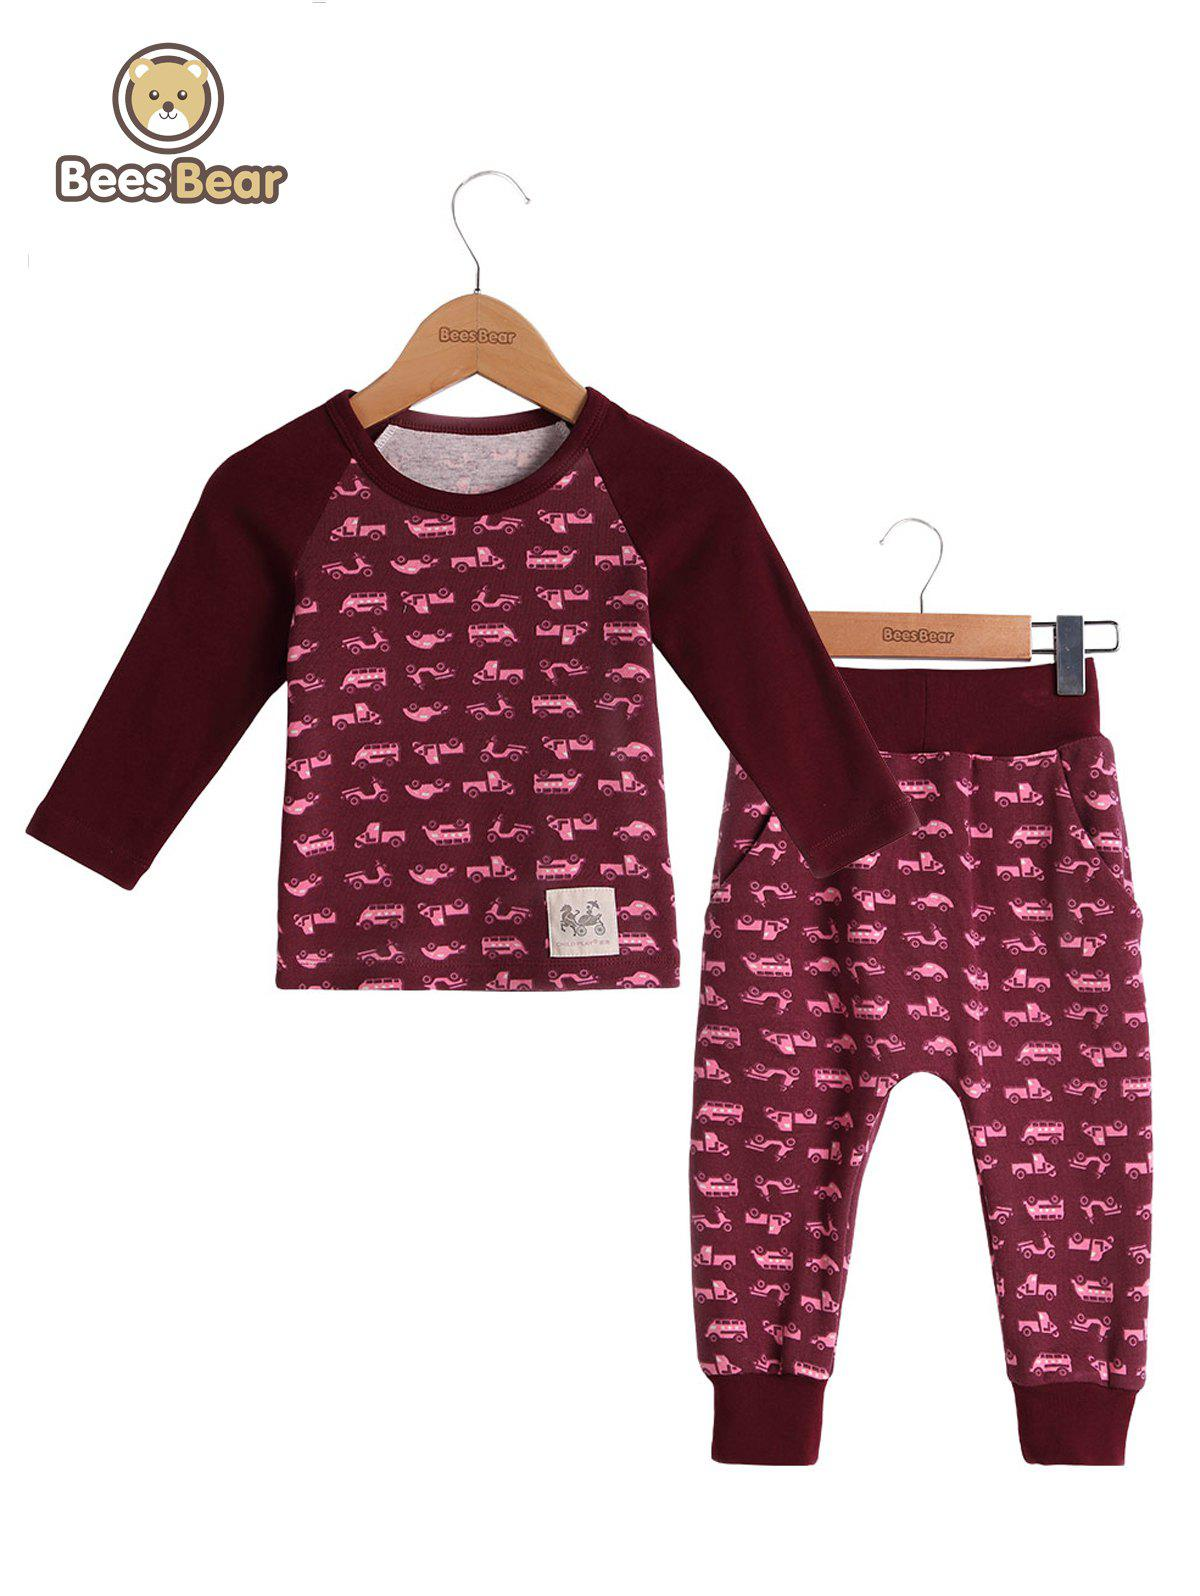 Hot Car Print Homewear Nightwear Sleepwear Pyjamas Sets